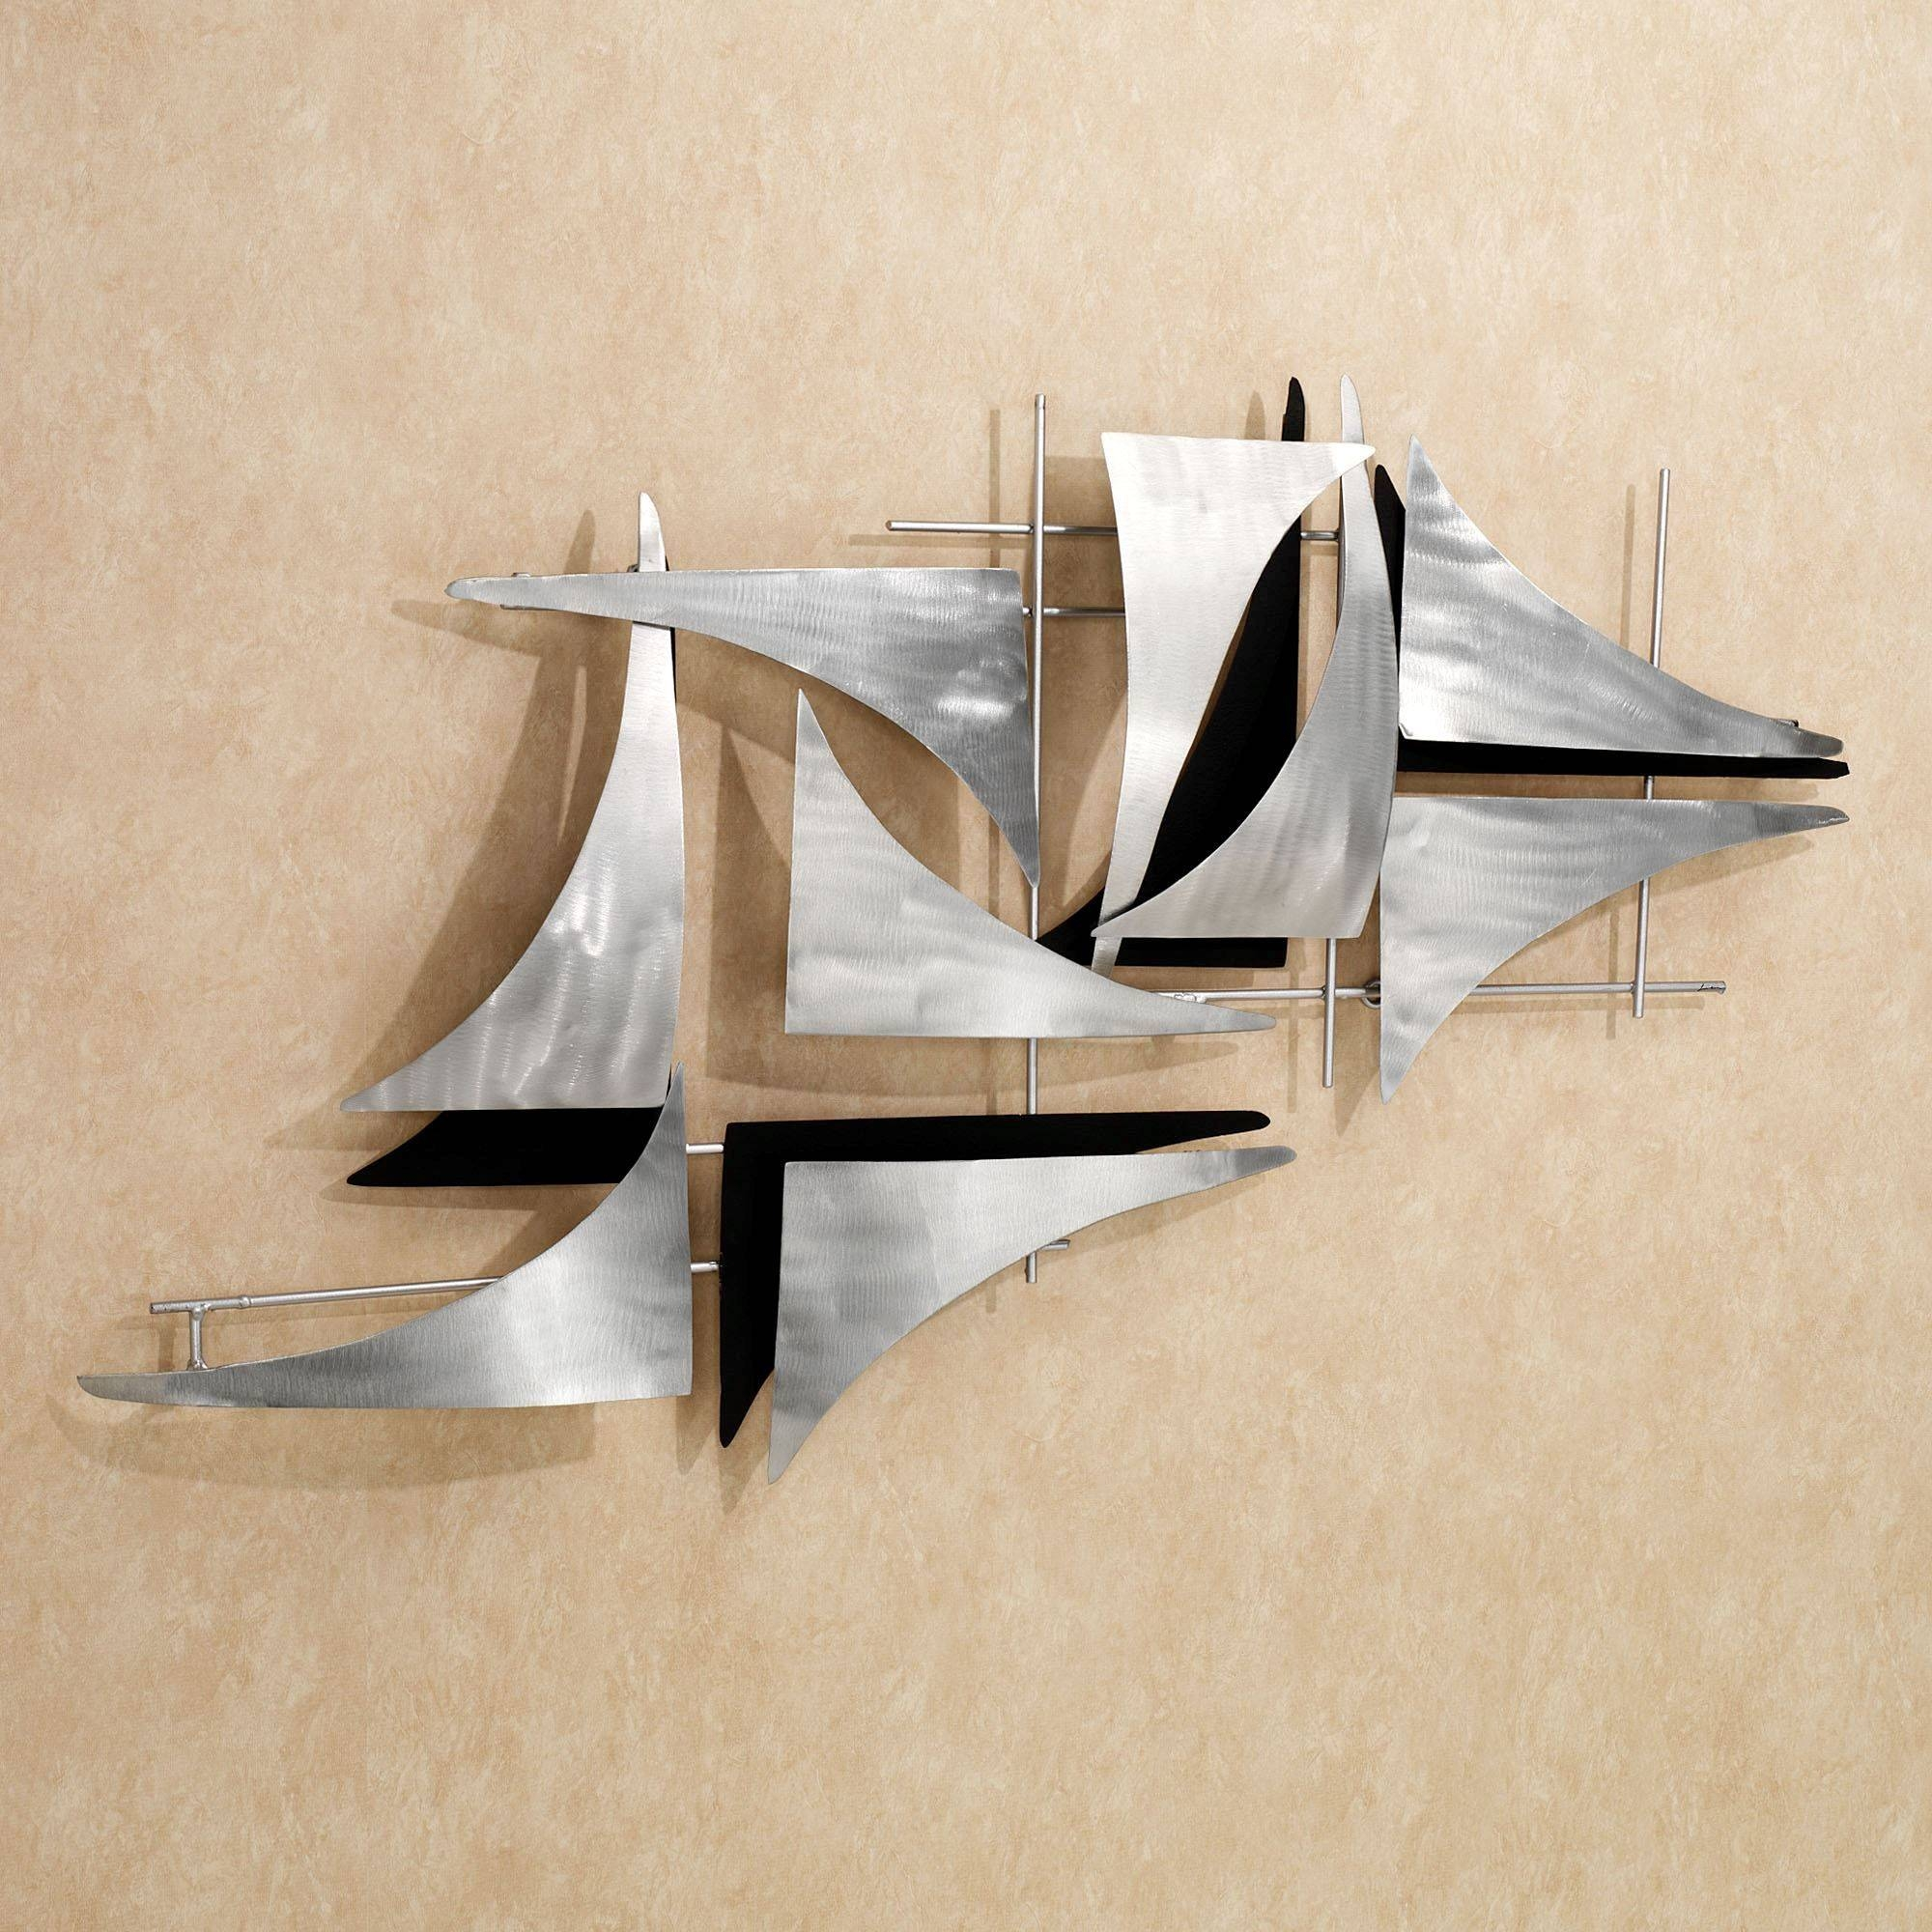 Contemporary Metal Wall Art Sculptures | Touch Of Class Pertaining To Most Recently Released Contemporary Metal Wall Art Sculpture (View 5 of 20)